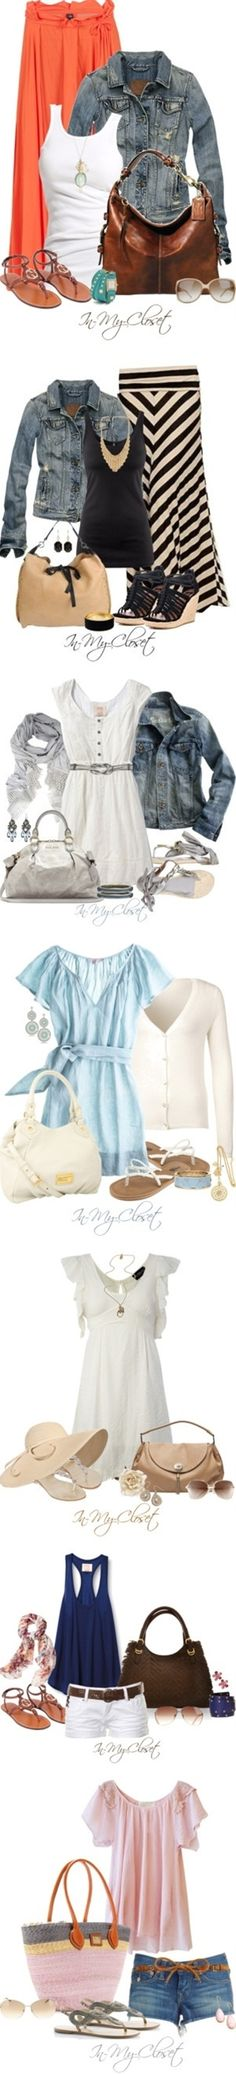 """Hurry Up Summer!"" by in-my-closet on Polyvore - Click image to find more fashion posts"